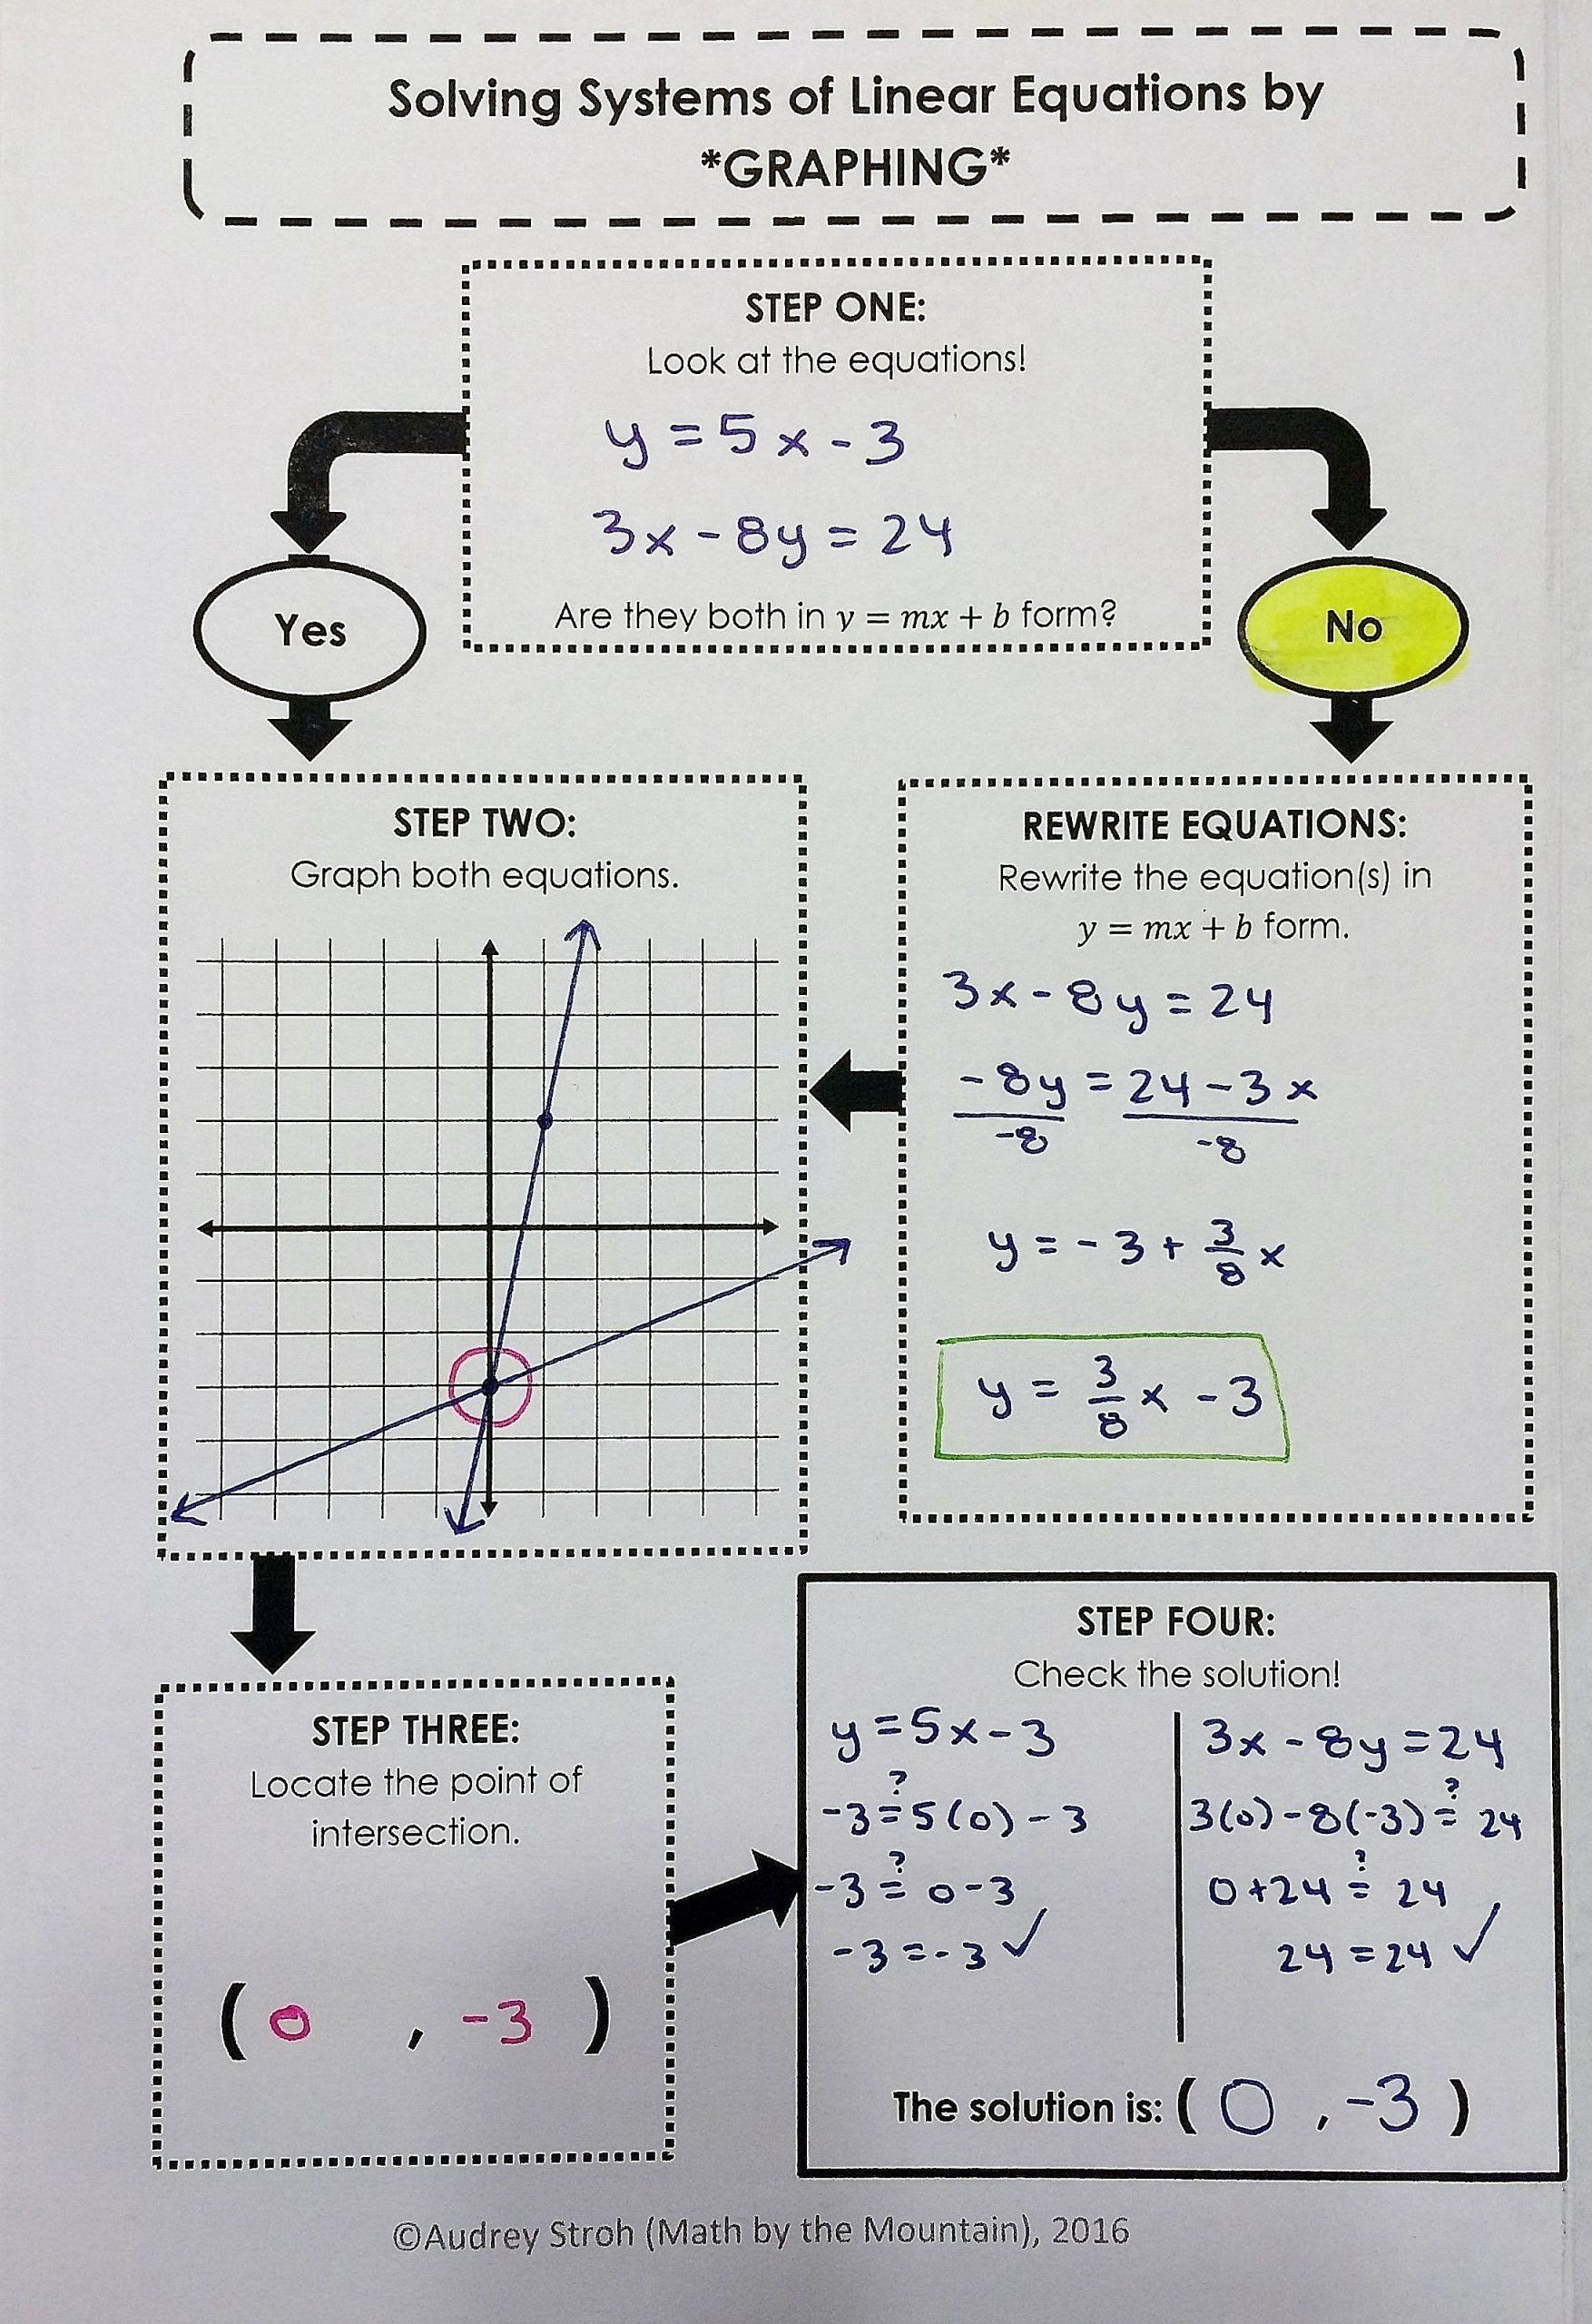 Solving Systems Of Inequalities Worksheet Solving Systems Of Linear Equations By Graphing Flowchart Teaching Math College Math Studying Math